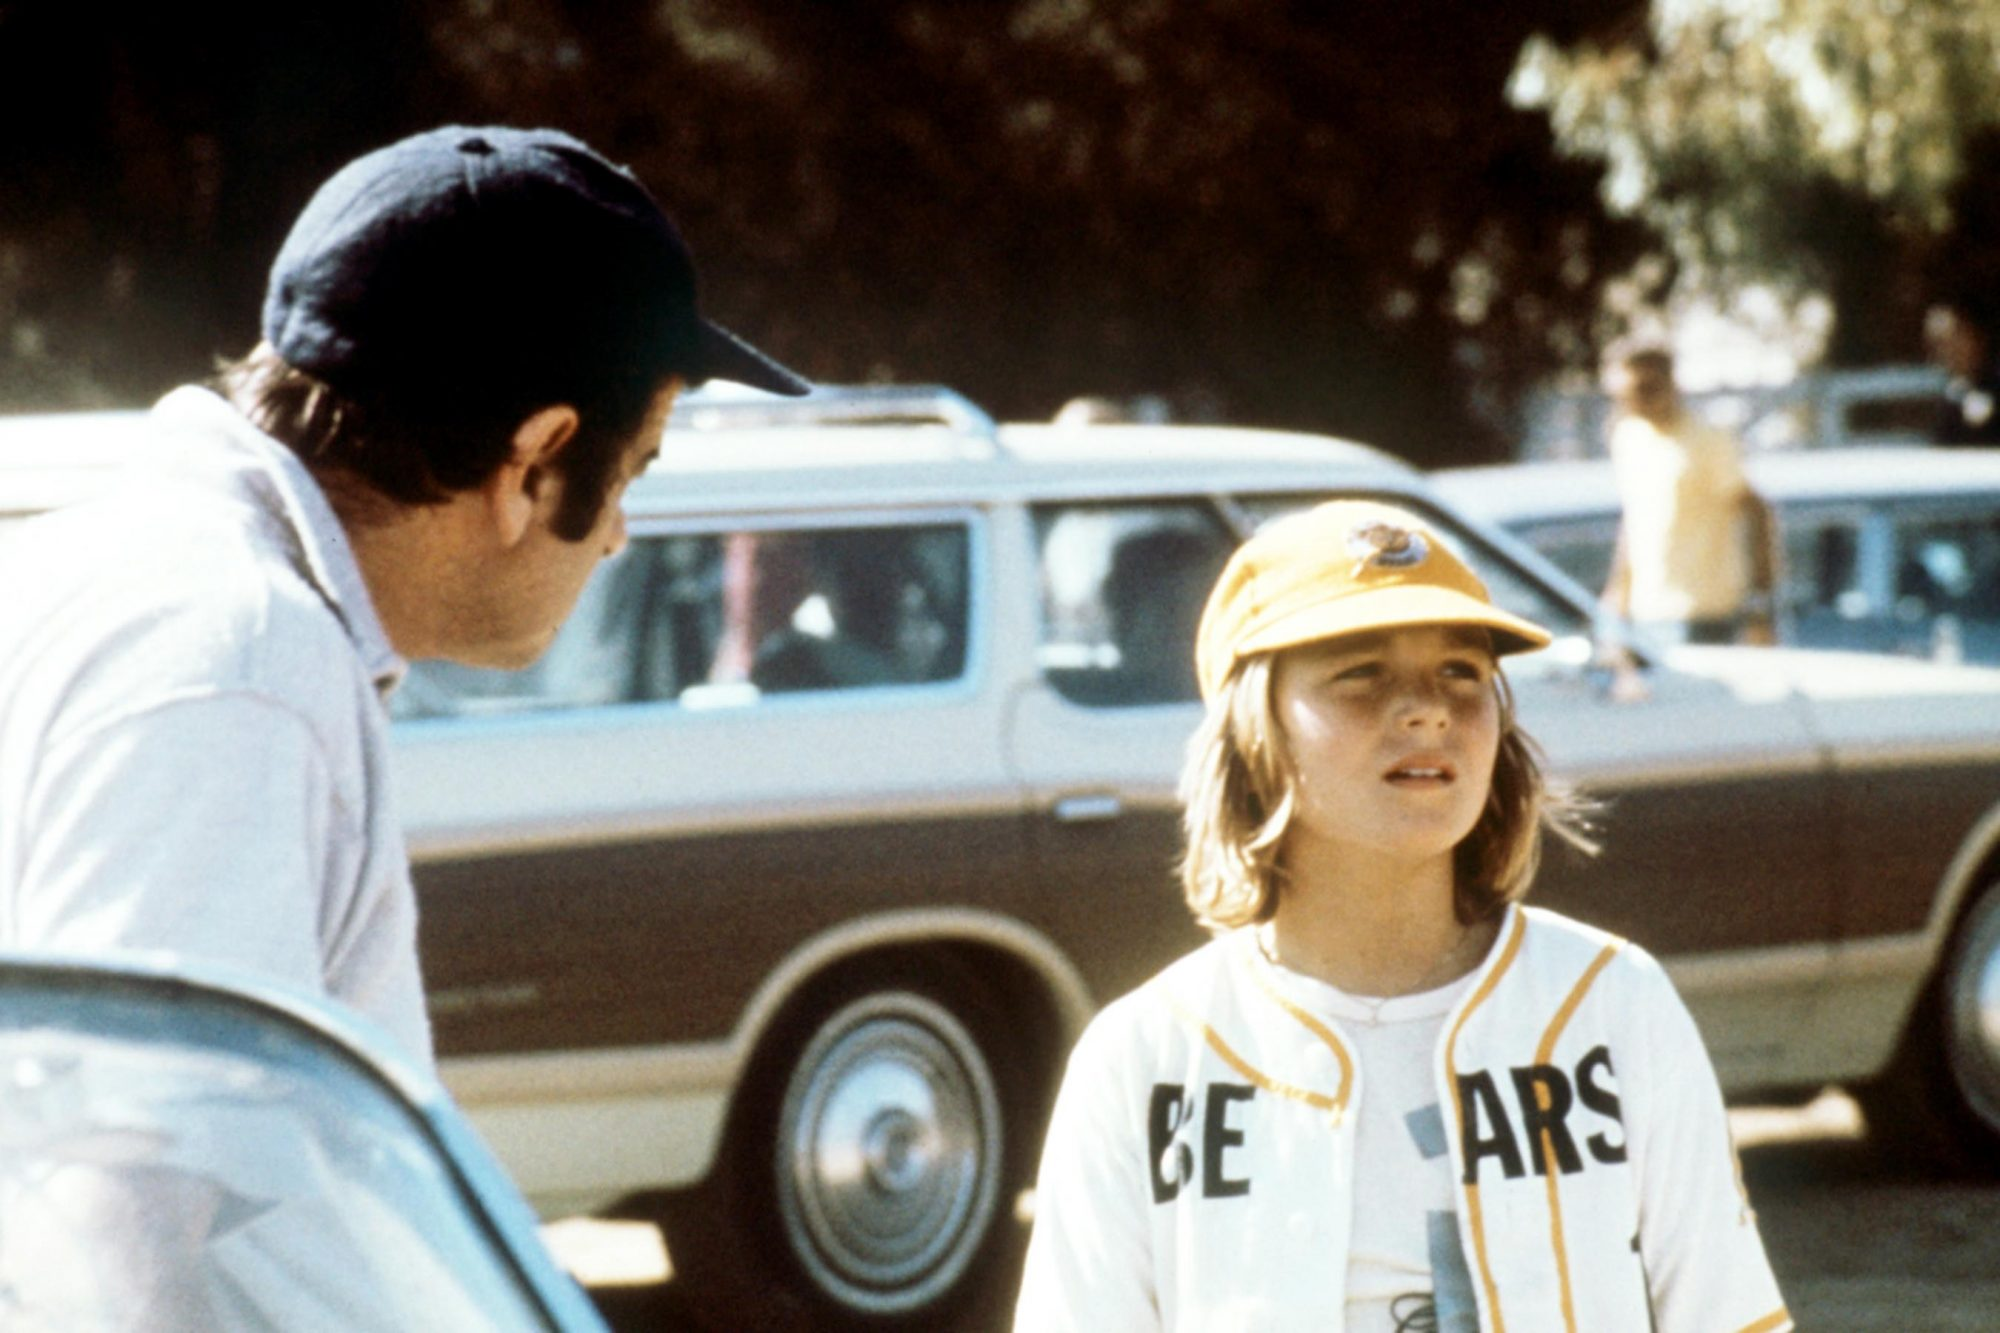 THE BAD NEWS BEARS, Walter Matthau, Tatum O'Neal, 1976.